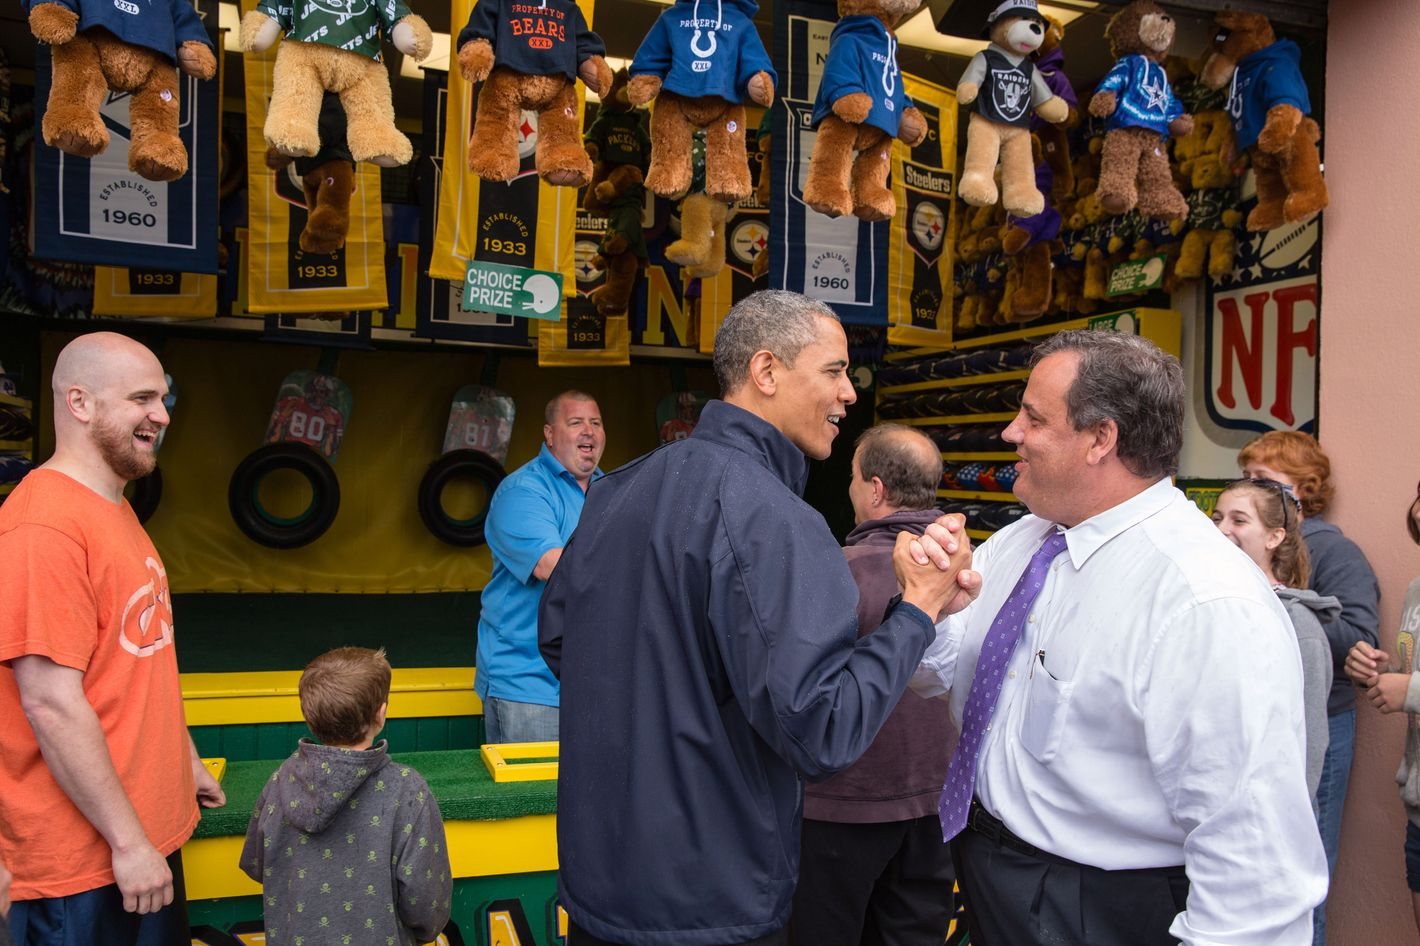 "In this handout provided by the White House, U.S. President Barack Obama (C) congratulates New Jersey Governor Chris Christie (R) while playing the ""TouchDown Fever"" arcade game along the Point Pleasant boardwalk May 28, 2013 in Point Pleasant Beach, New Jersey.  Seven months after Superstorm Sandy devastated the region, President Obama declared that the Jersey Shore is back in an appearance with the governor."